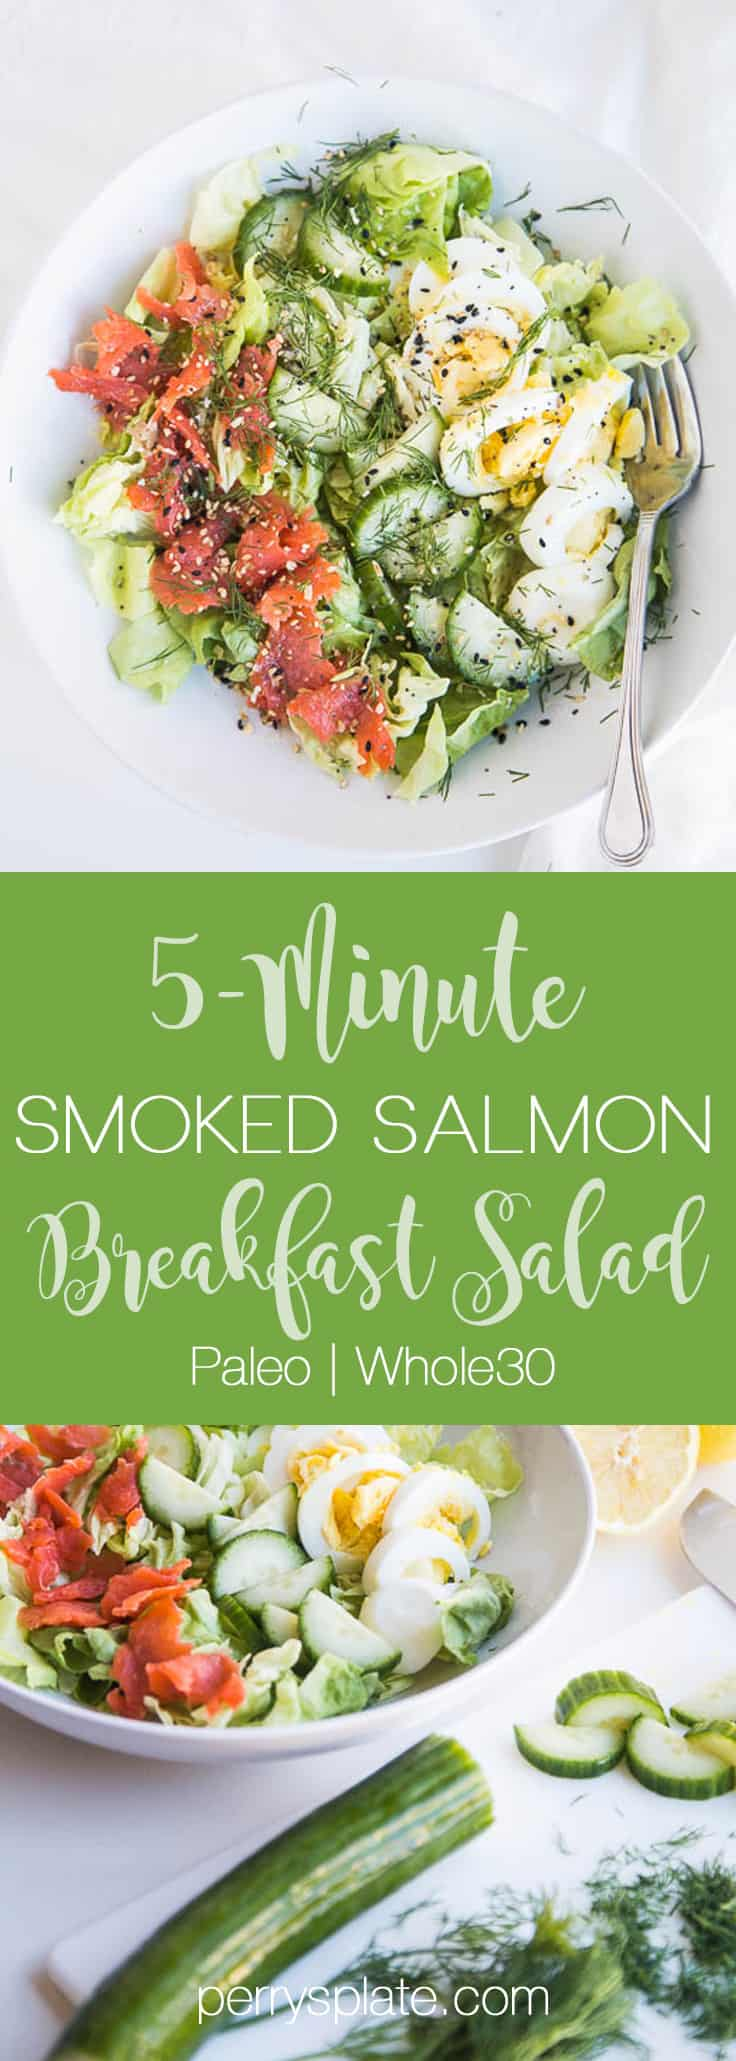 5-Minute Smoked Salmon Breakfast Salad | breakfast salad recipes | paleo recipes | gluten-free recipes | dairy-free recipes | keto recipes | Whole30 recipes | perrysplate.com